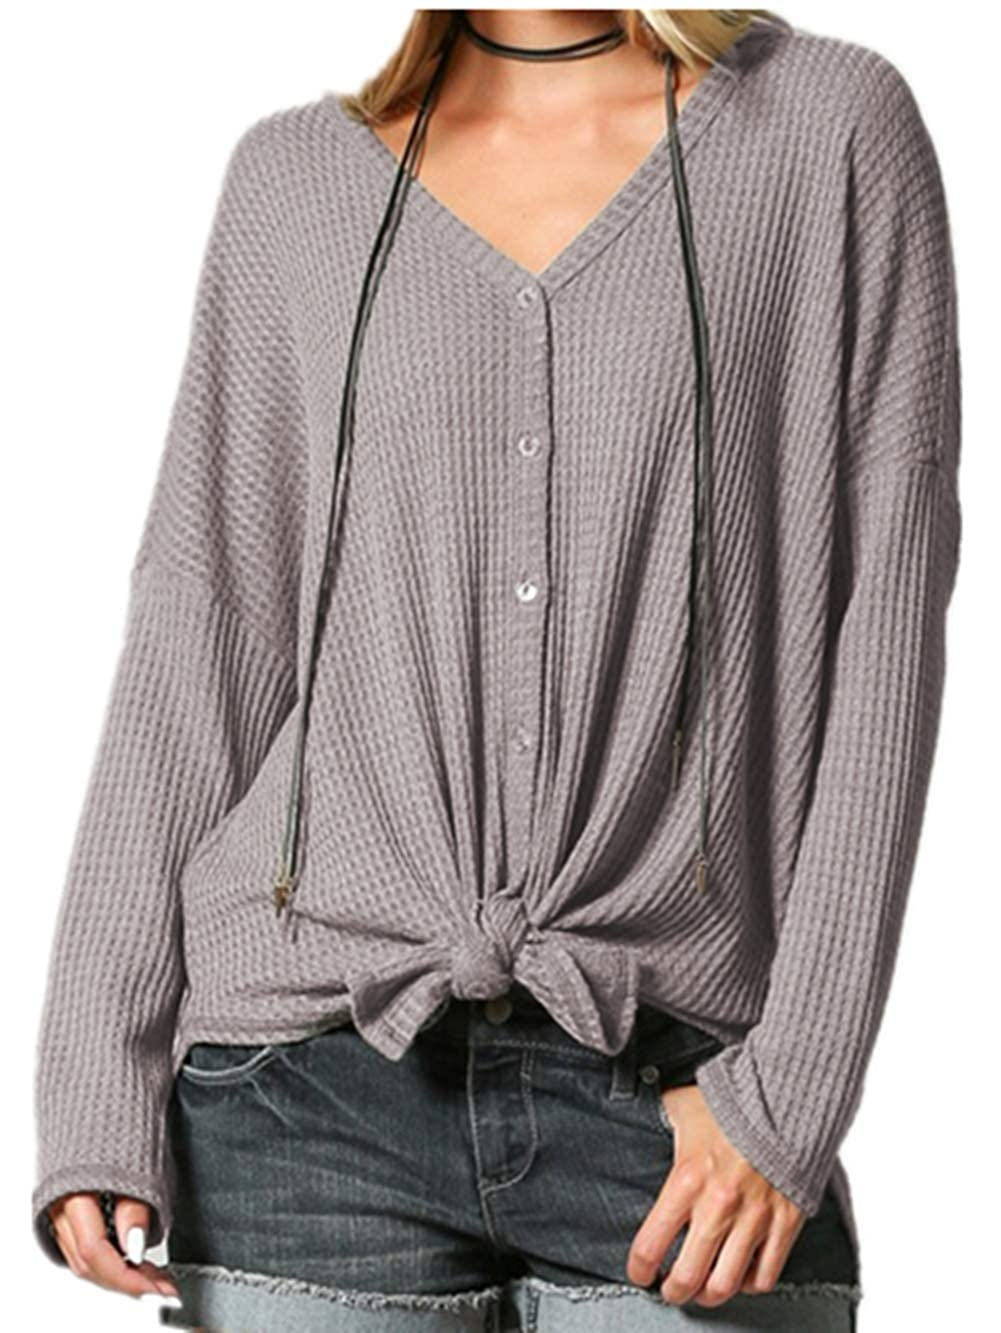 YANDW Women Waffle Knit Sweater Long Sleeve Tops Button Down Shirts Tie Front Henley